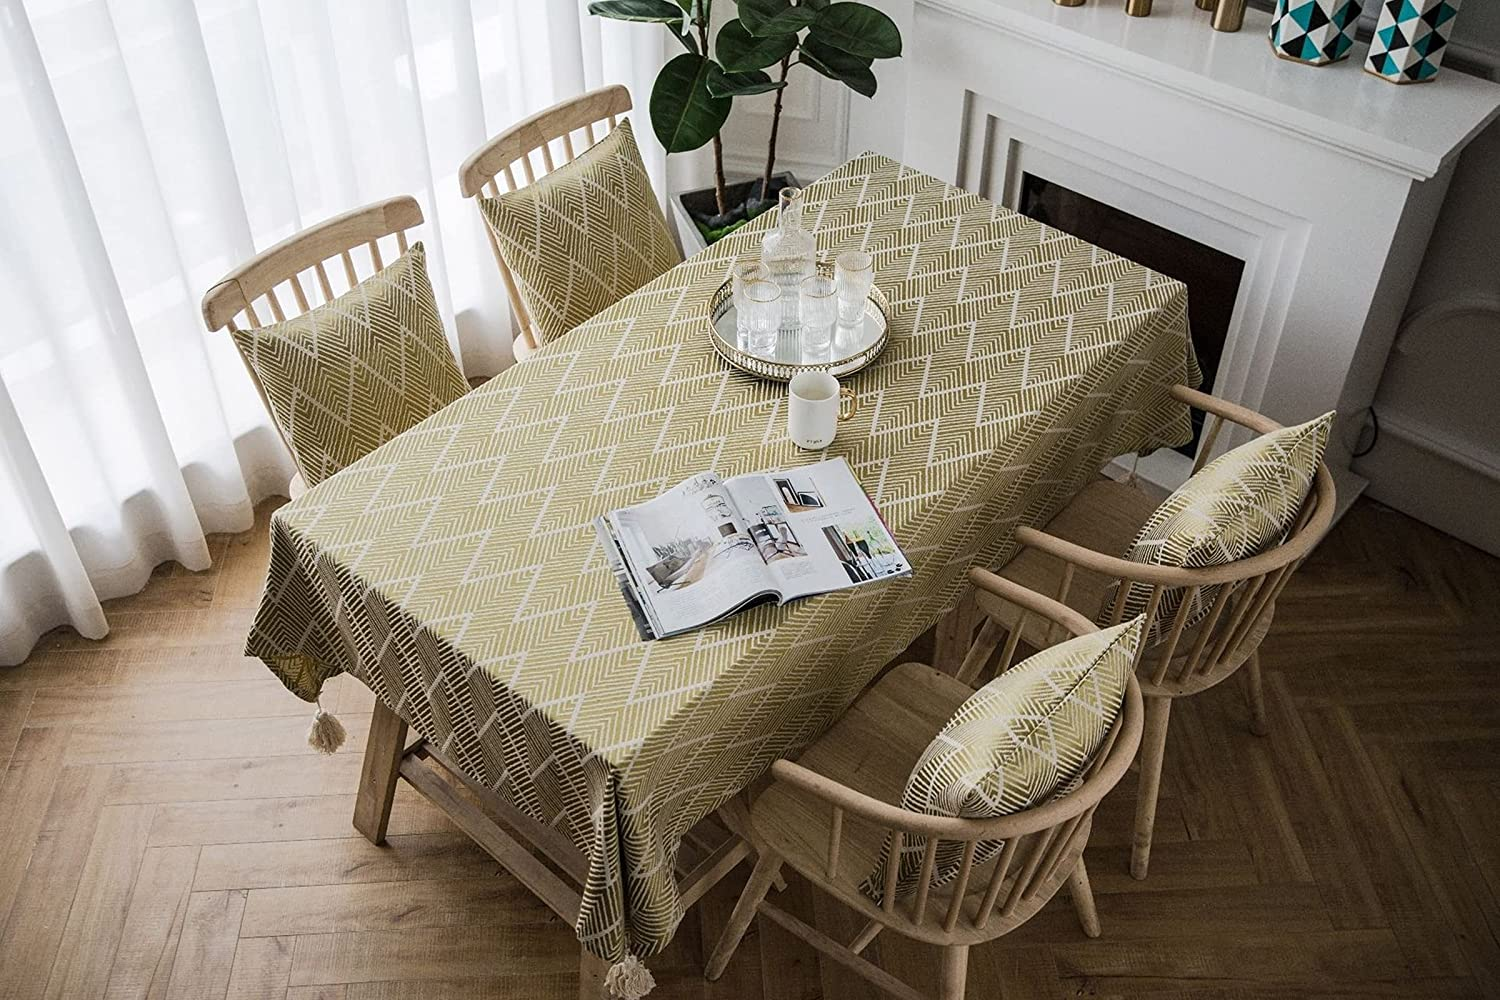 Agoble Camping Tablecloth Max 61% OFF Yellow Jacquard Tassels 4 Opening large release sale Wave Shape